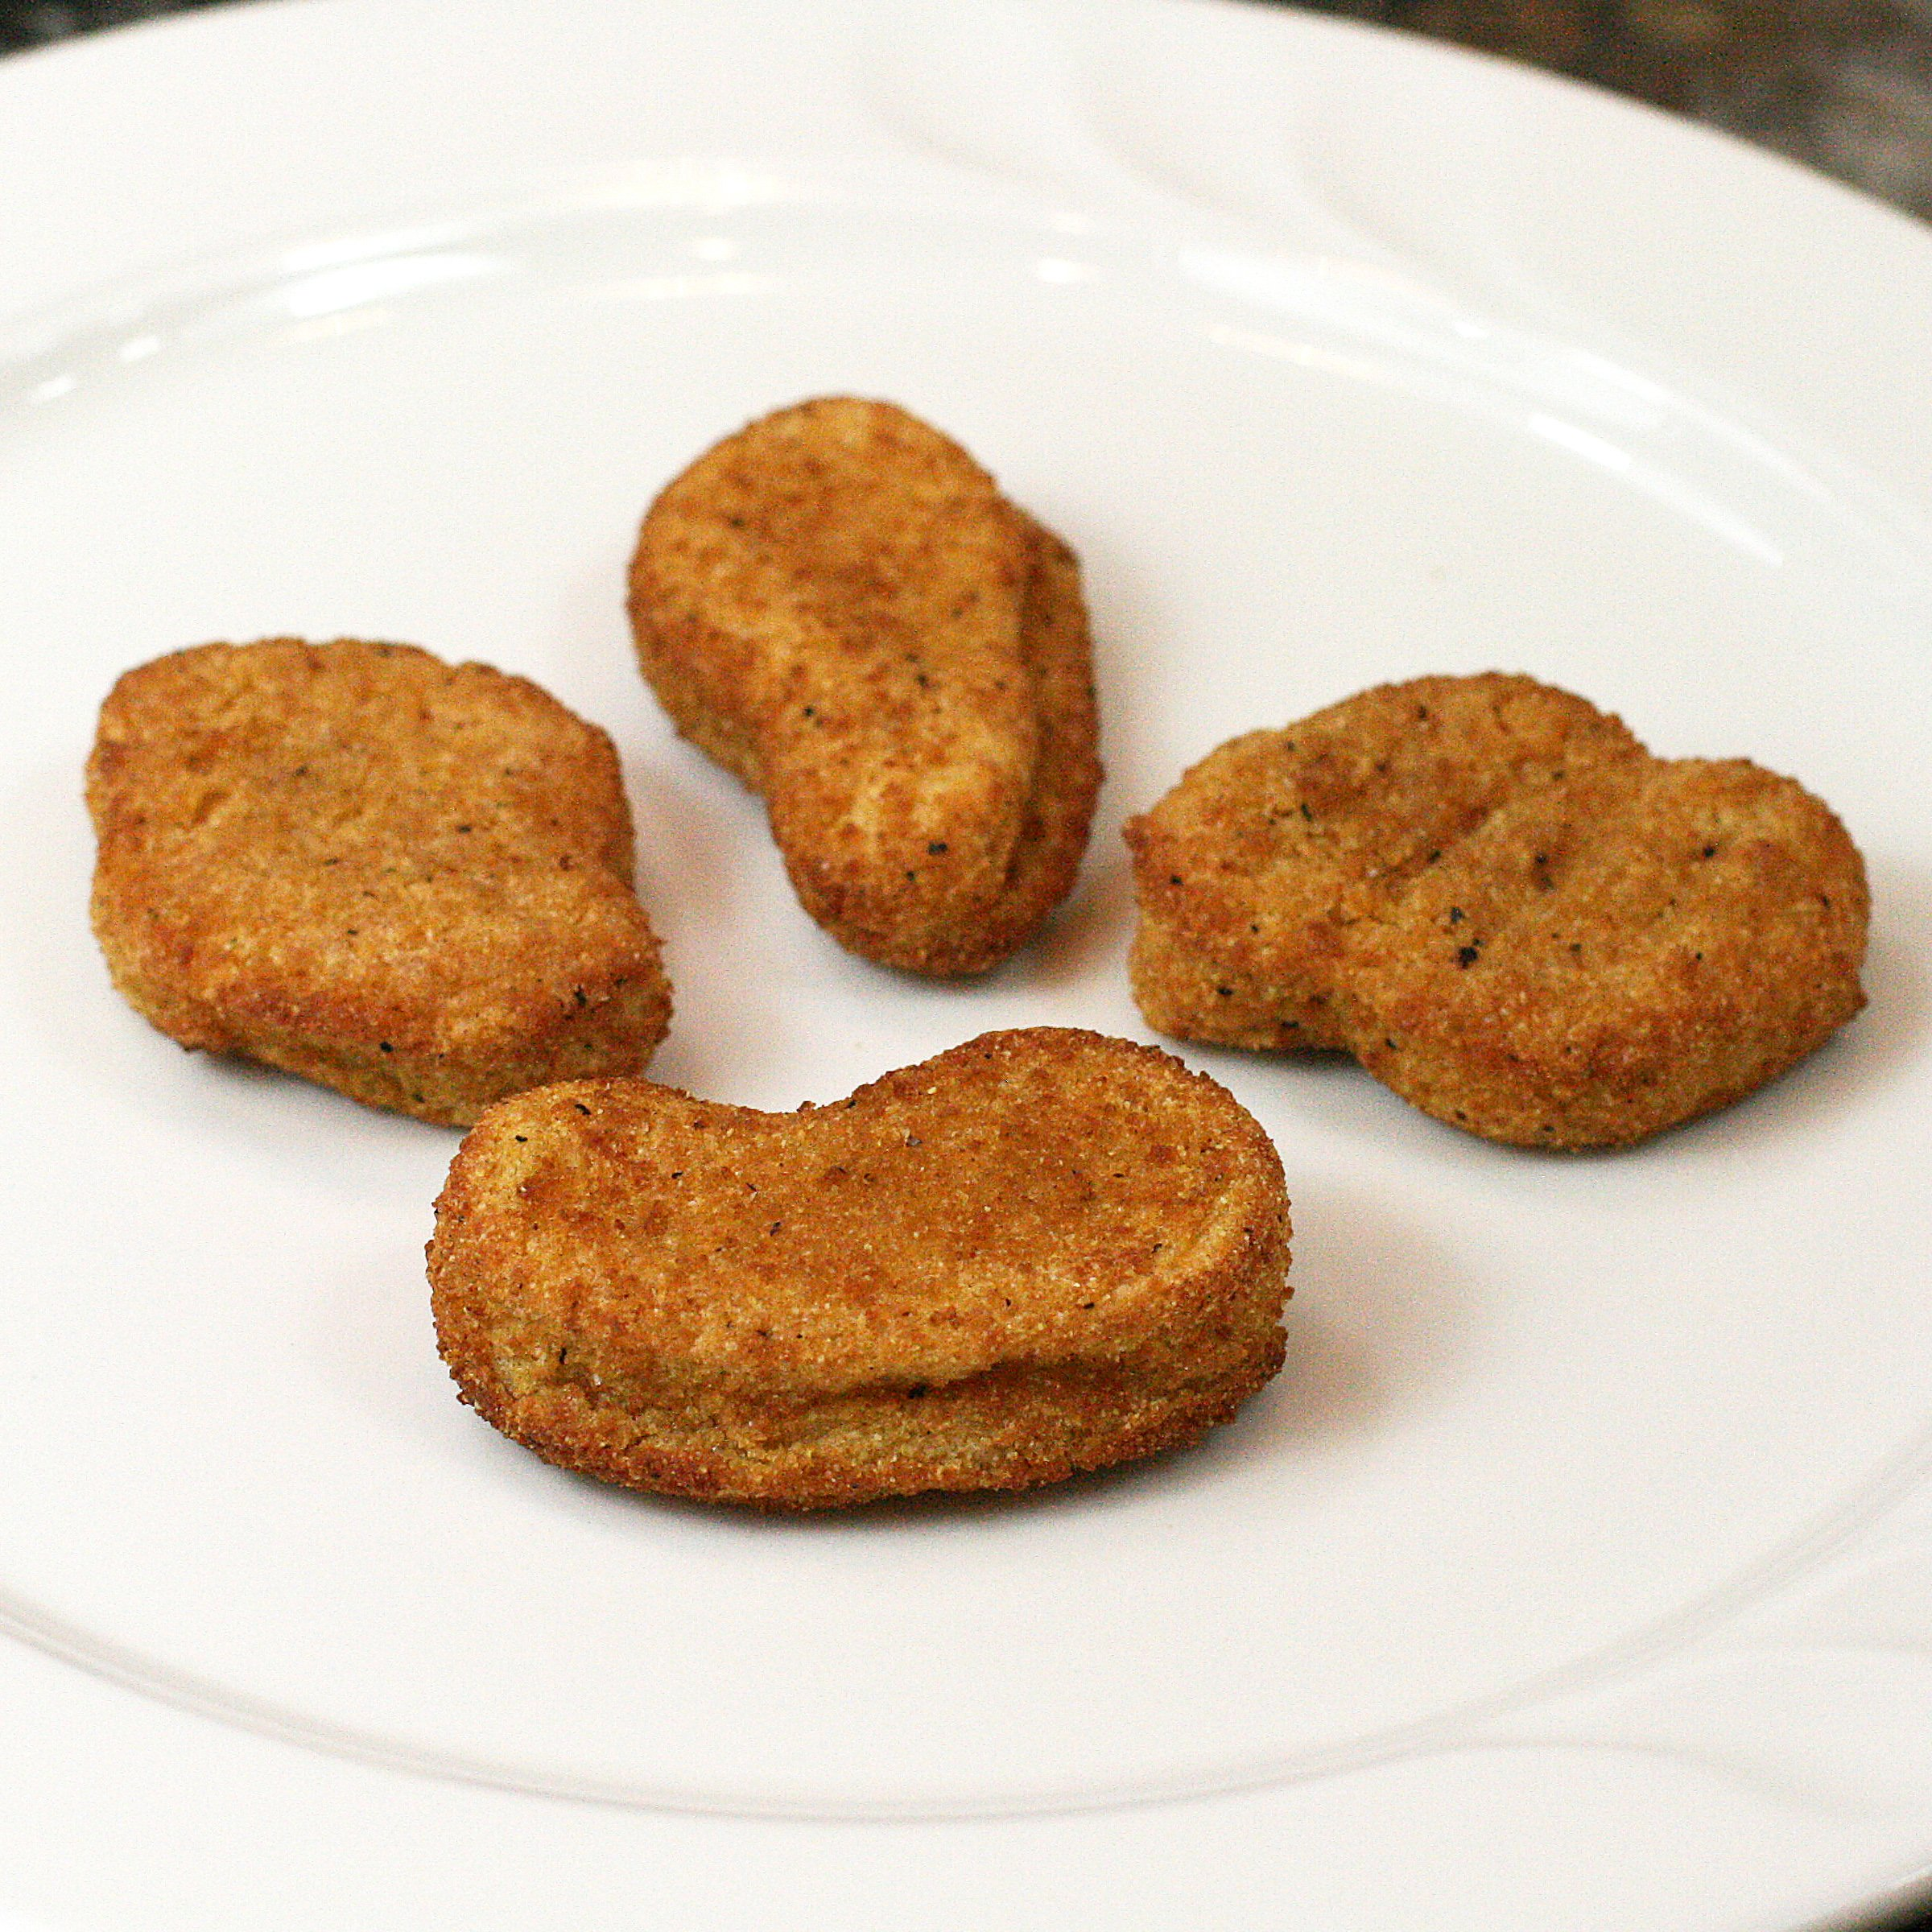 Chicken, Fully Cooked Whole Grain Breaded Chicken Breast Nuggets, 5 lb, (2 per case)